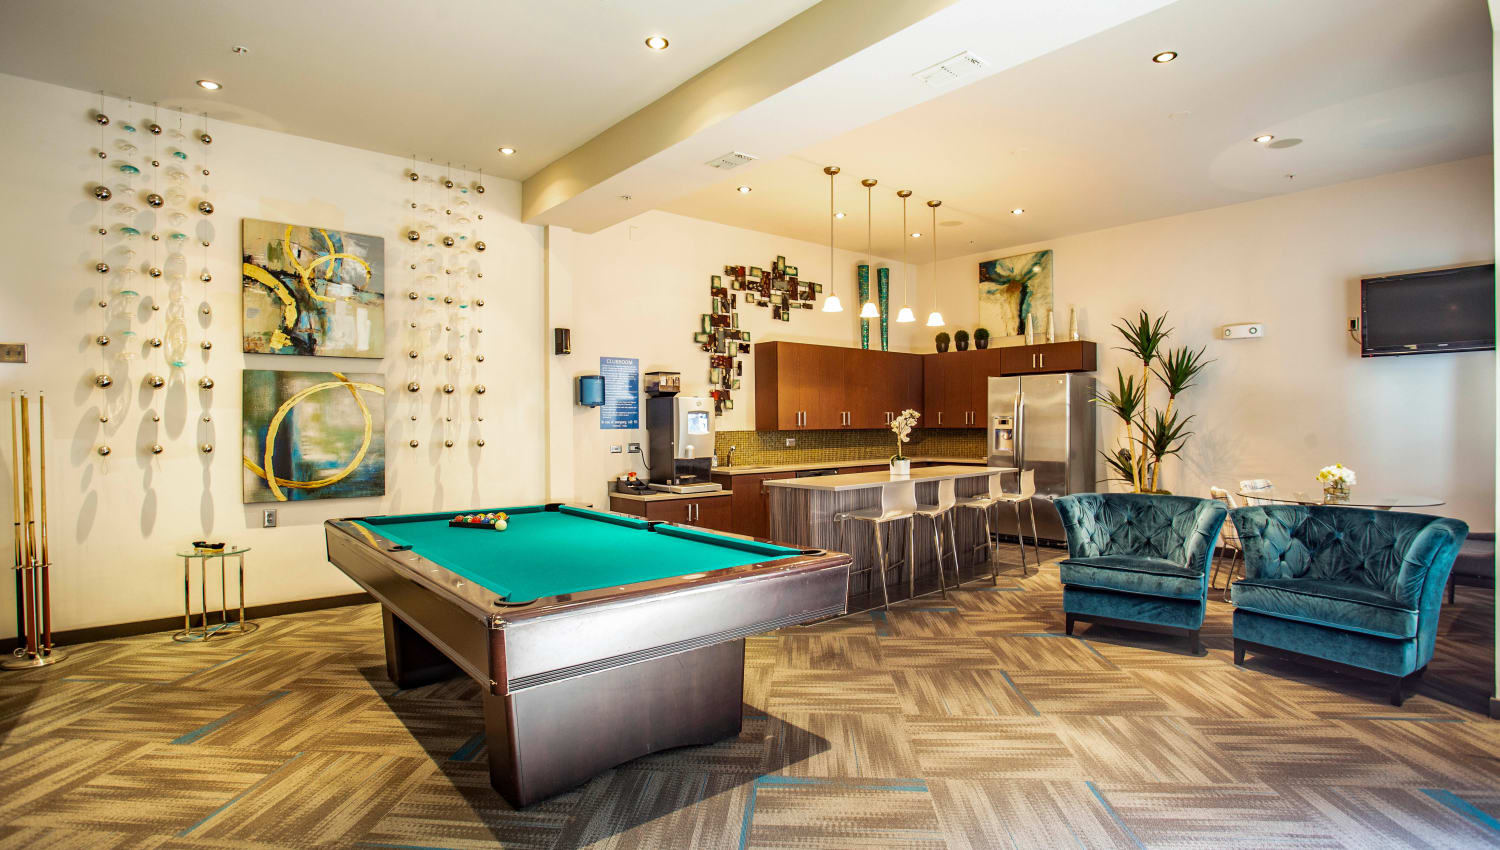 Billiards table and more in the resident clubhouse at Olympus Midtown in Nashville, Tennessee